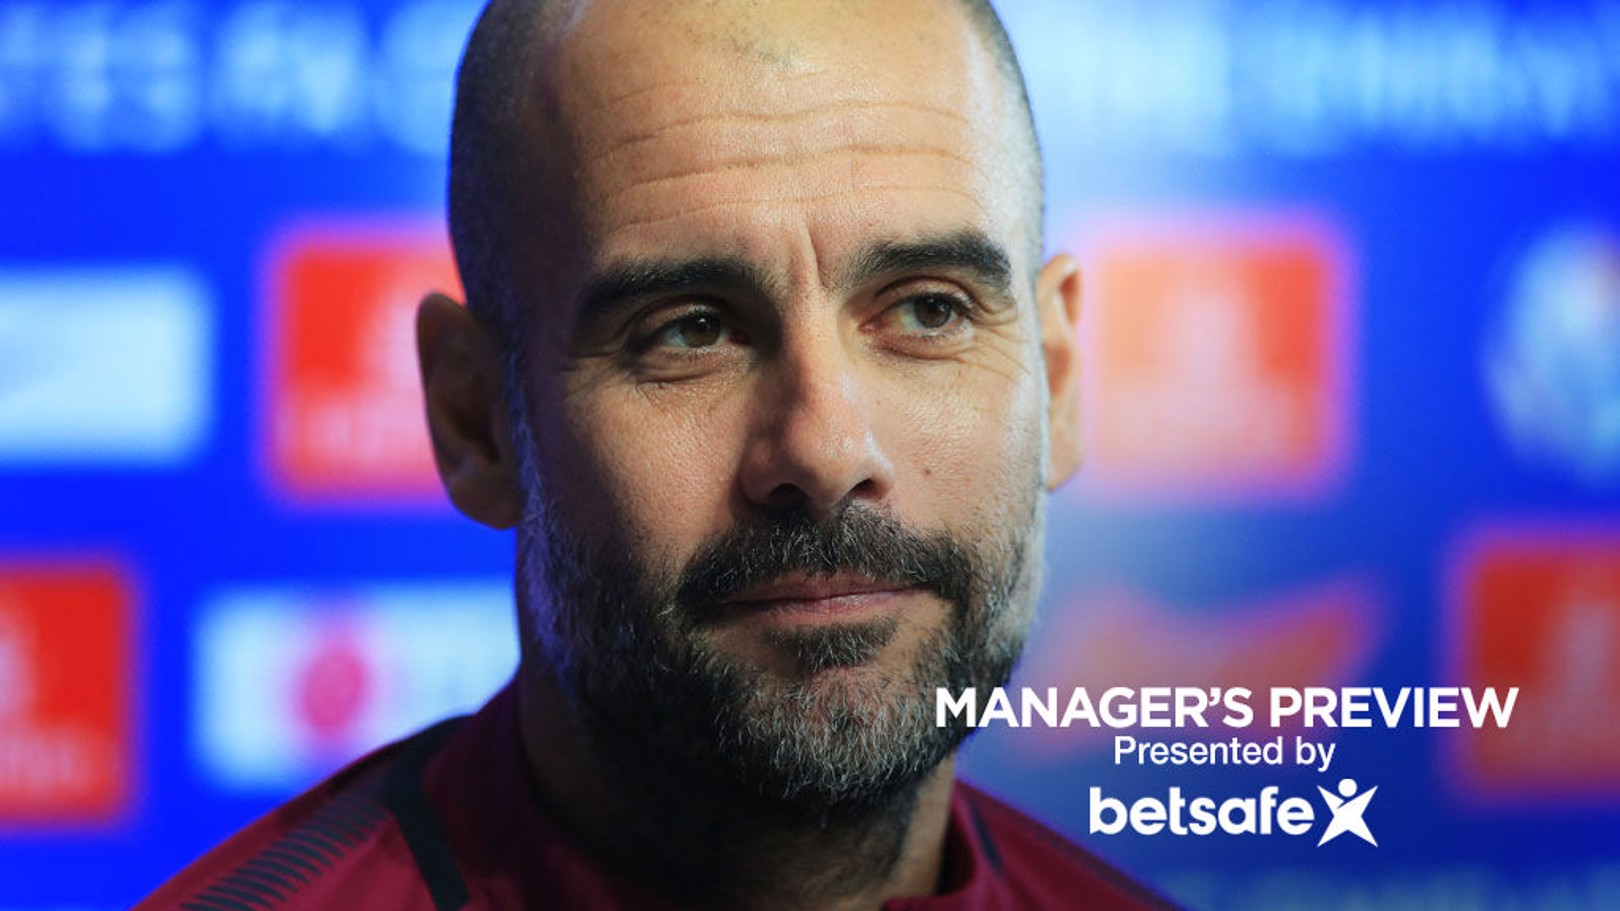 FA CUP FOCUS: Pep Guardiola addresses the media ahead of Cardiff City.